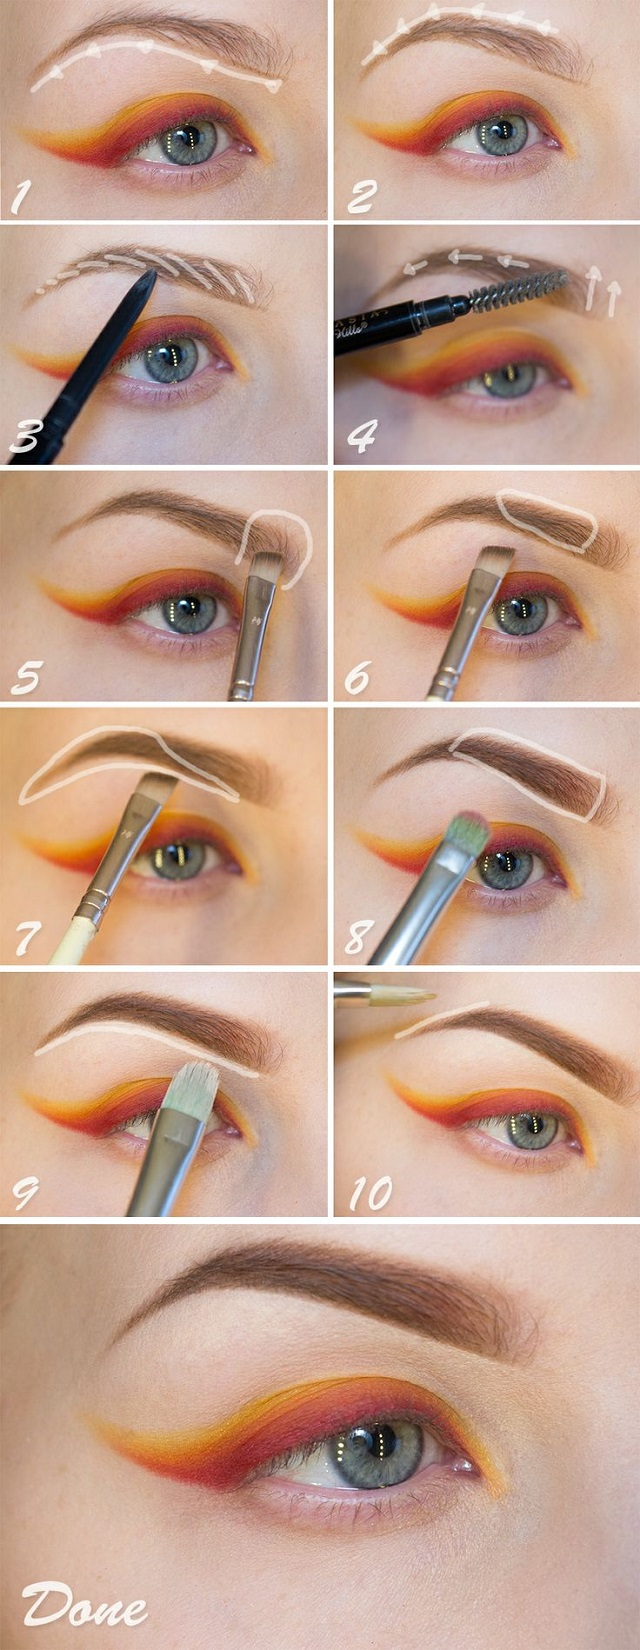 Eyebrows Shaping Technique